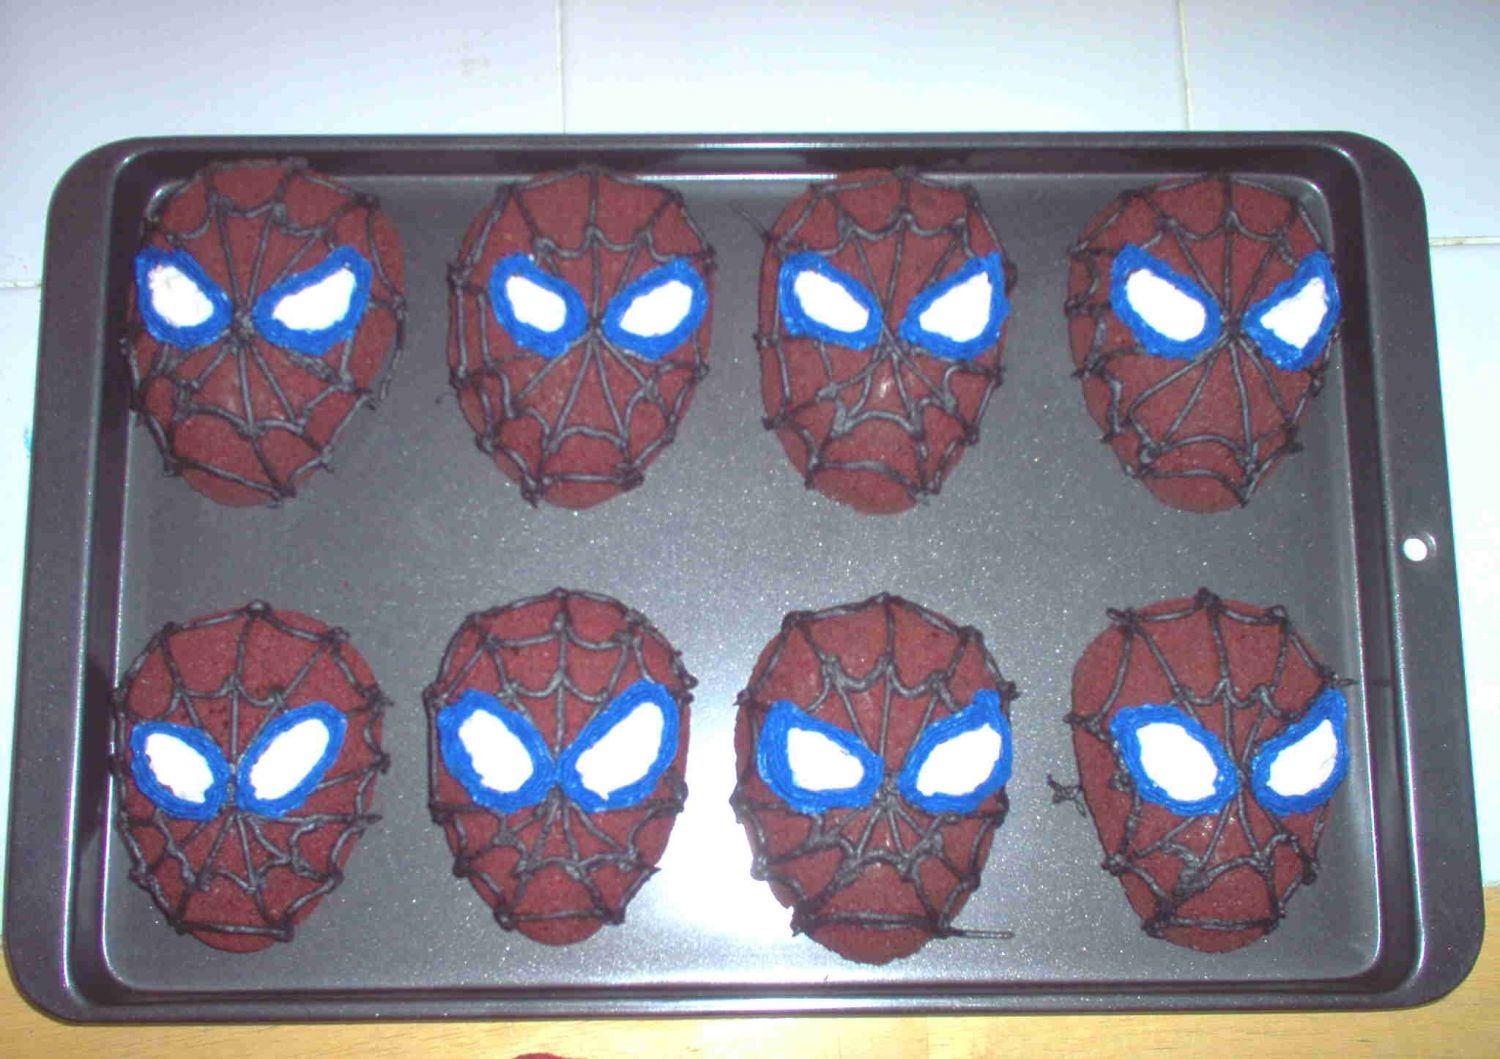 Spiderman Cakes My son had a bowling party for his 4th birthday but still wanted the Spiderman theme. I made the Spiderman heads to eliminate having to cut...